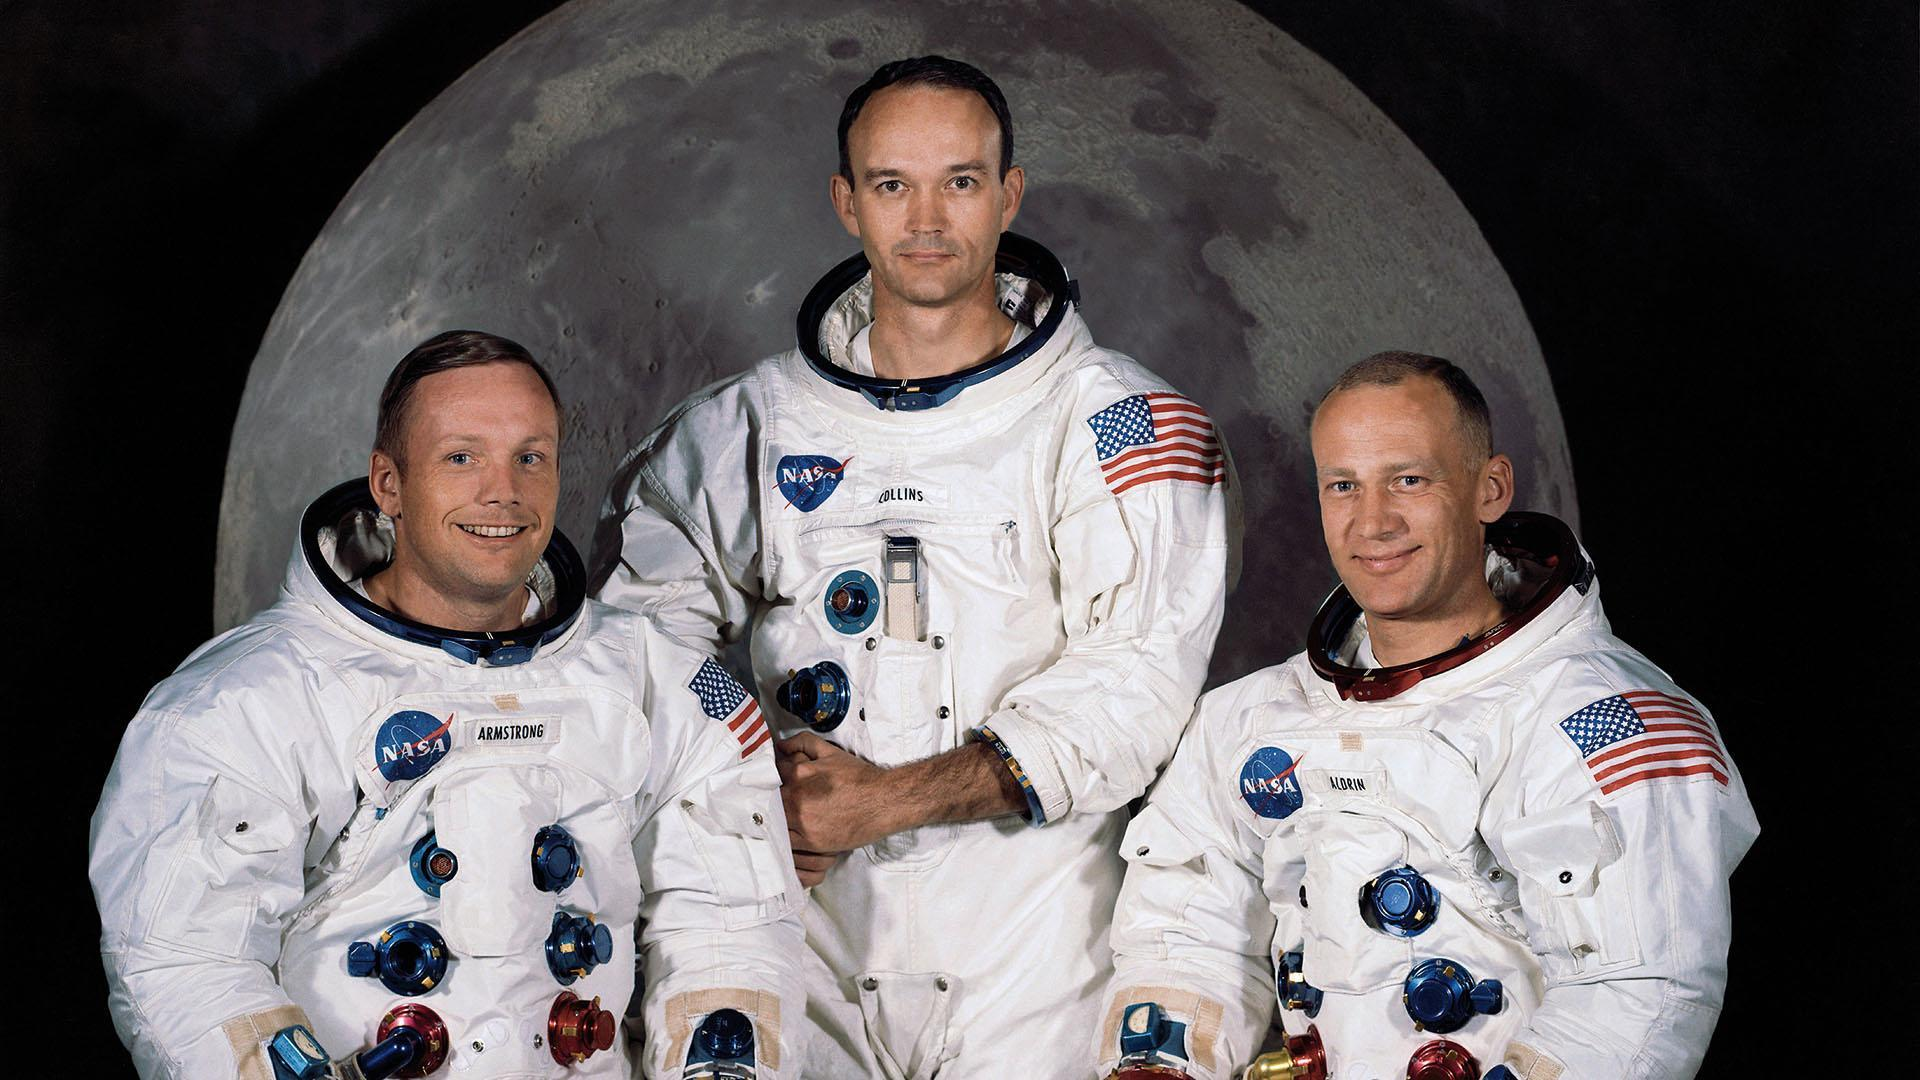 The three astronauts, Neil Armstrong (left), Michael Collins (centre) and Edwin 'Buzz' Aldrin.